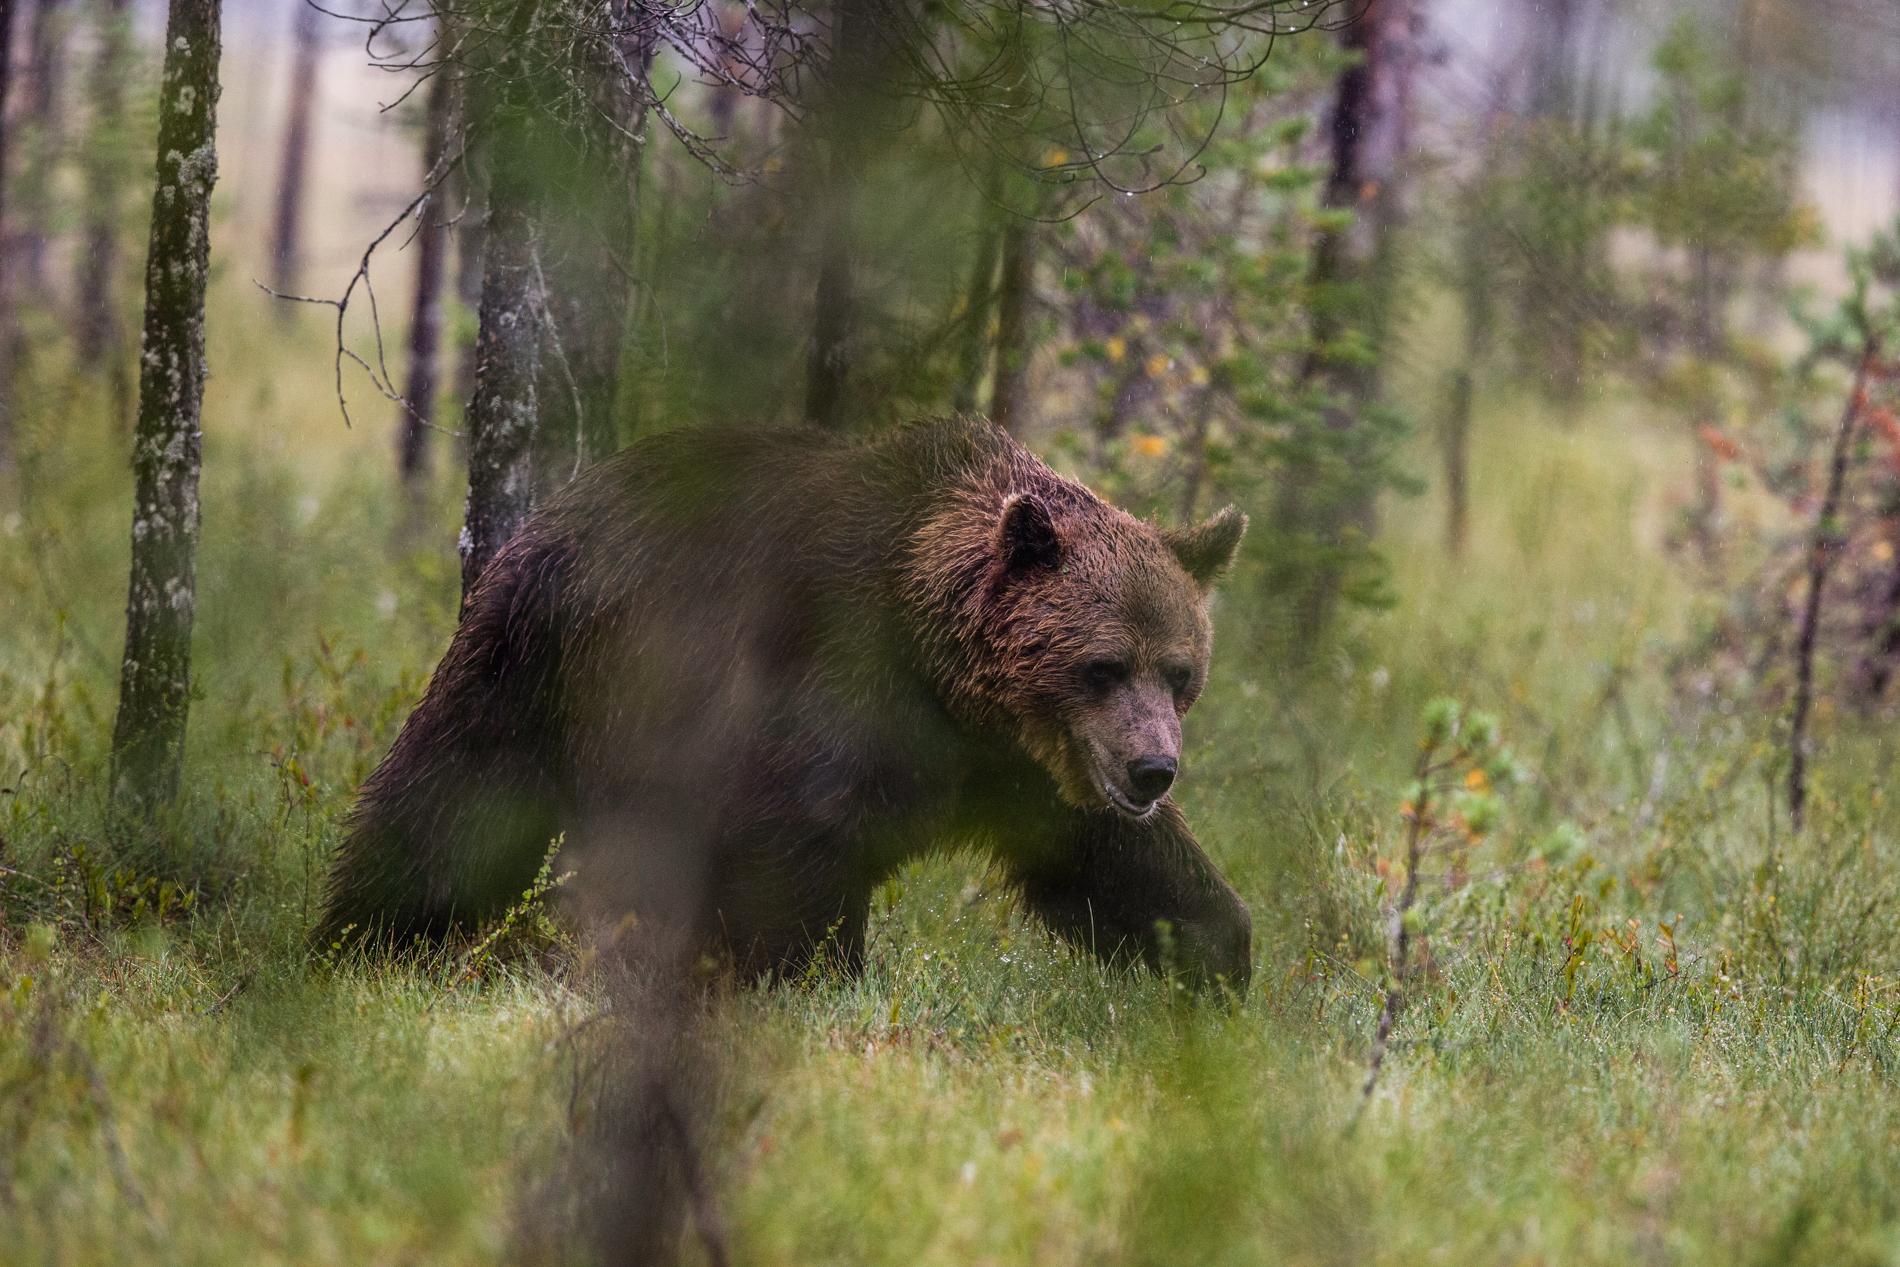 Brown bear roaming the forest of Finland